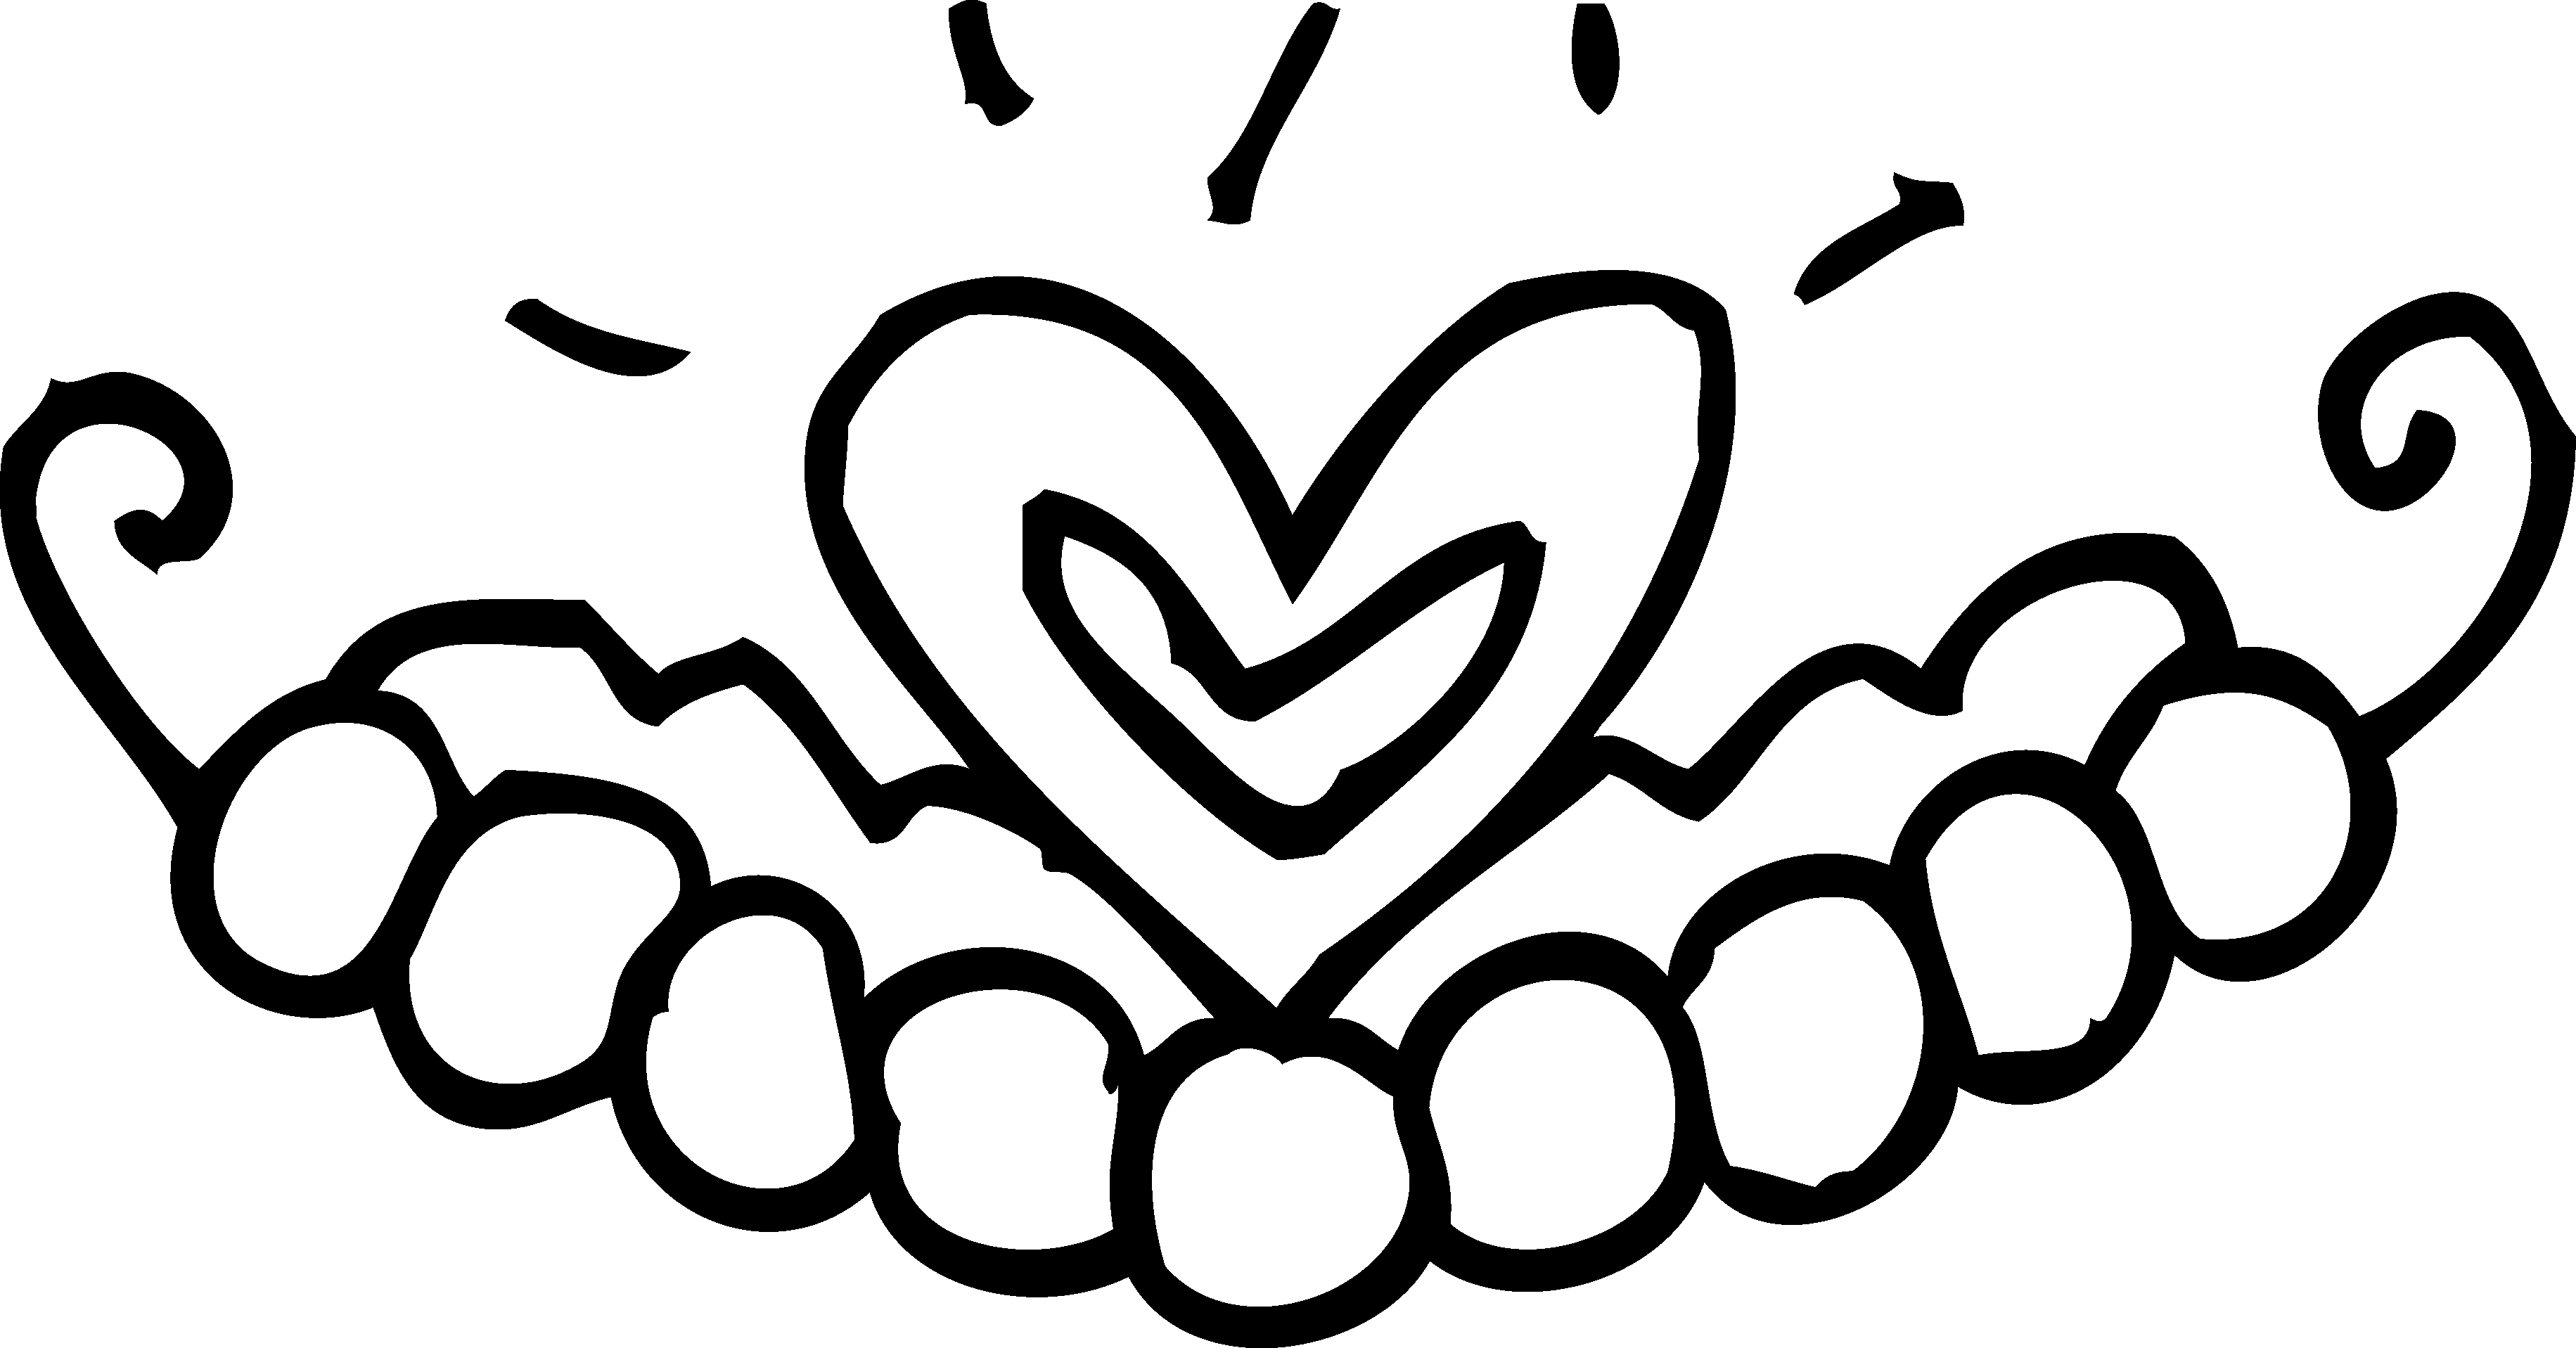 Outline drawing at getdrawings. Crown outlione clipart